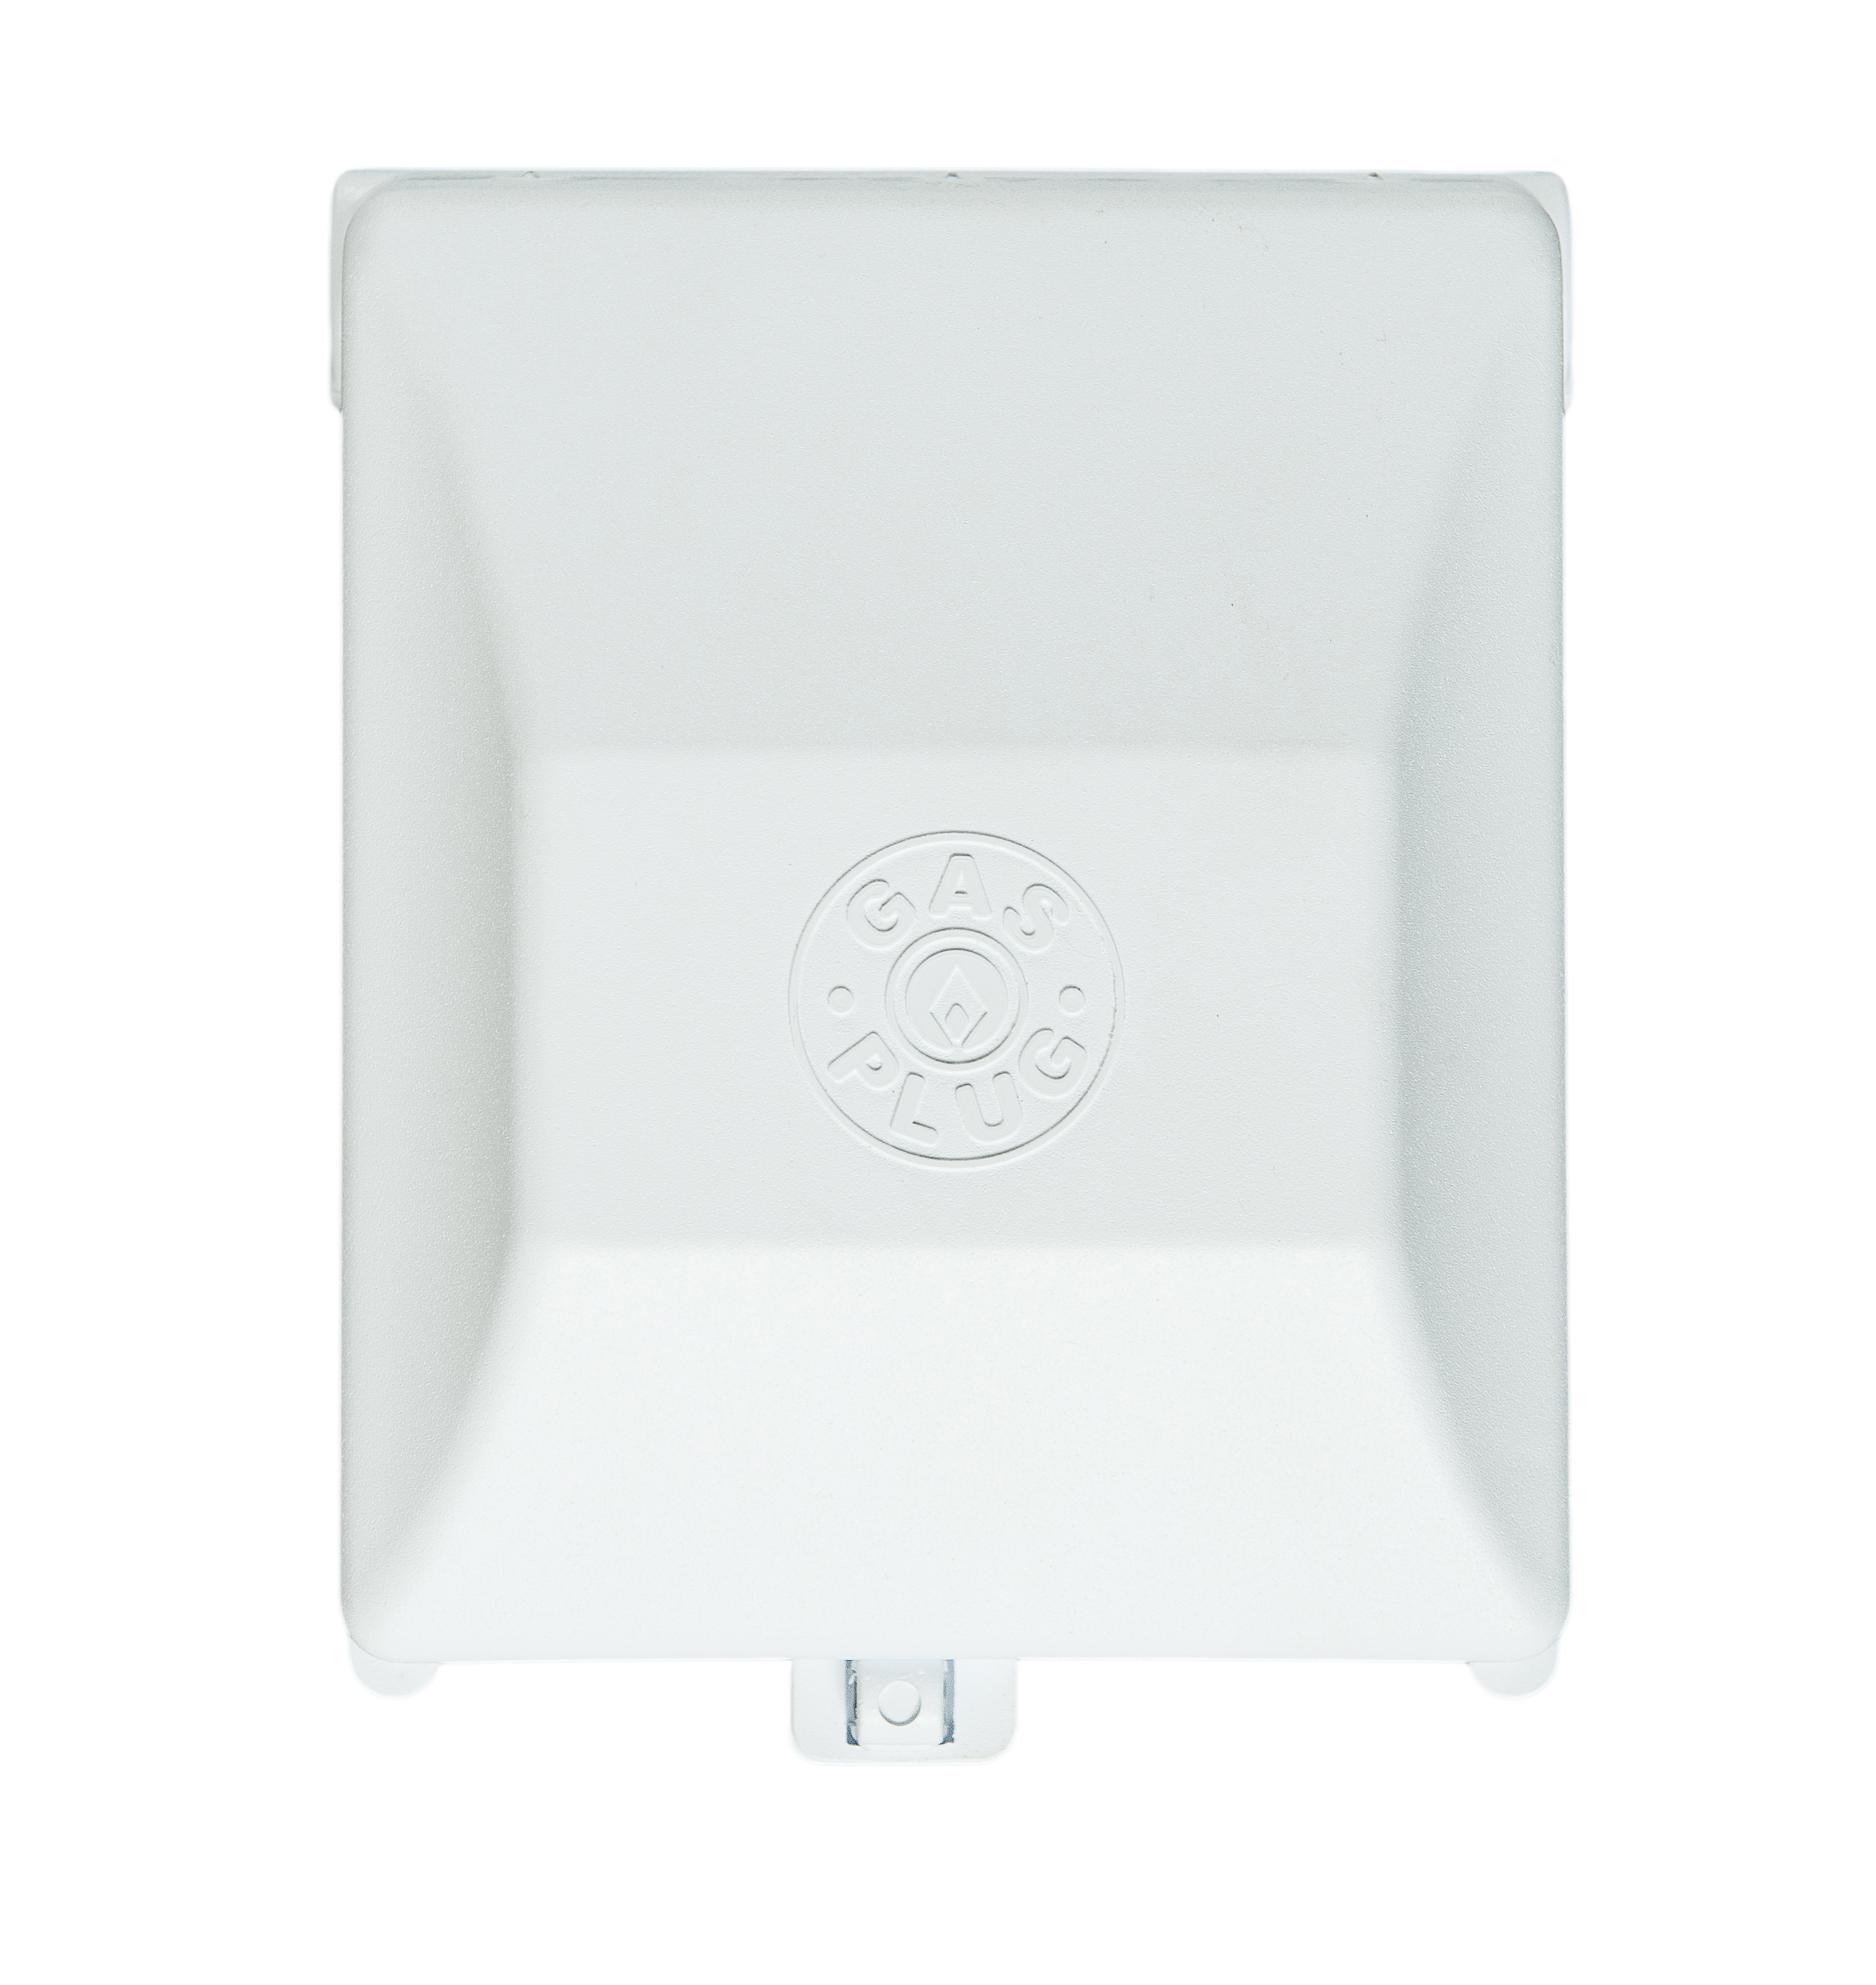 Burnaby Manufacturing Ltd G0101-2#-5W-50 Gas Plug Gas Outlet Box with 1//2-Inch Inlet and 3//8-Inch Outlet White PVC Enclosure